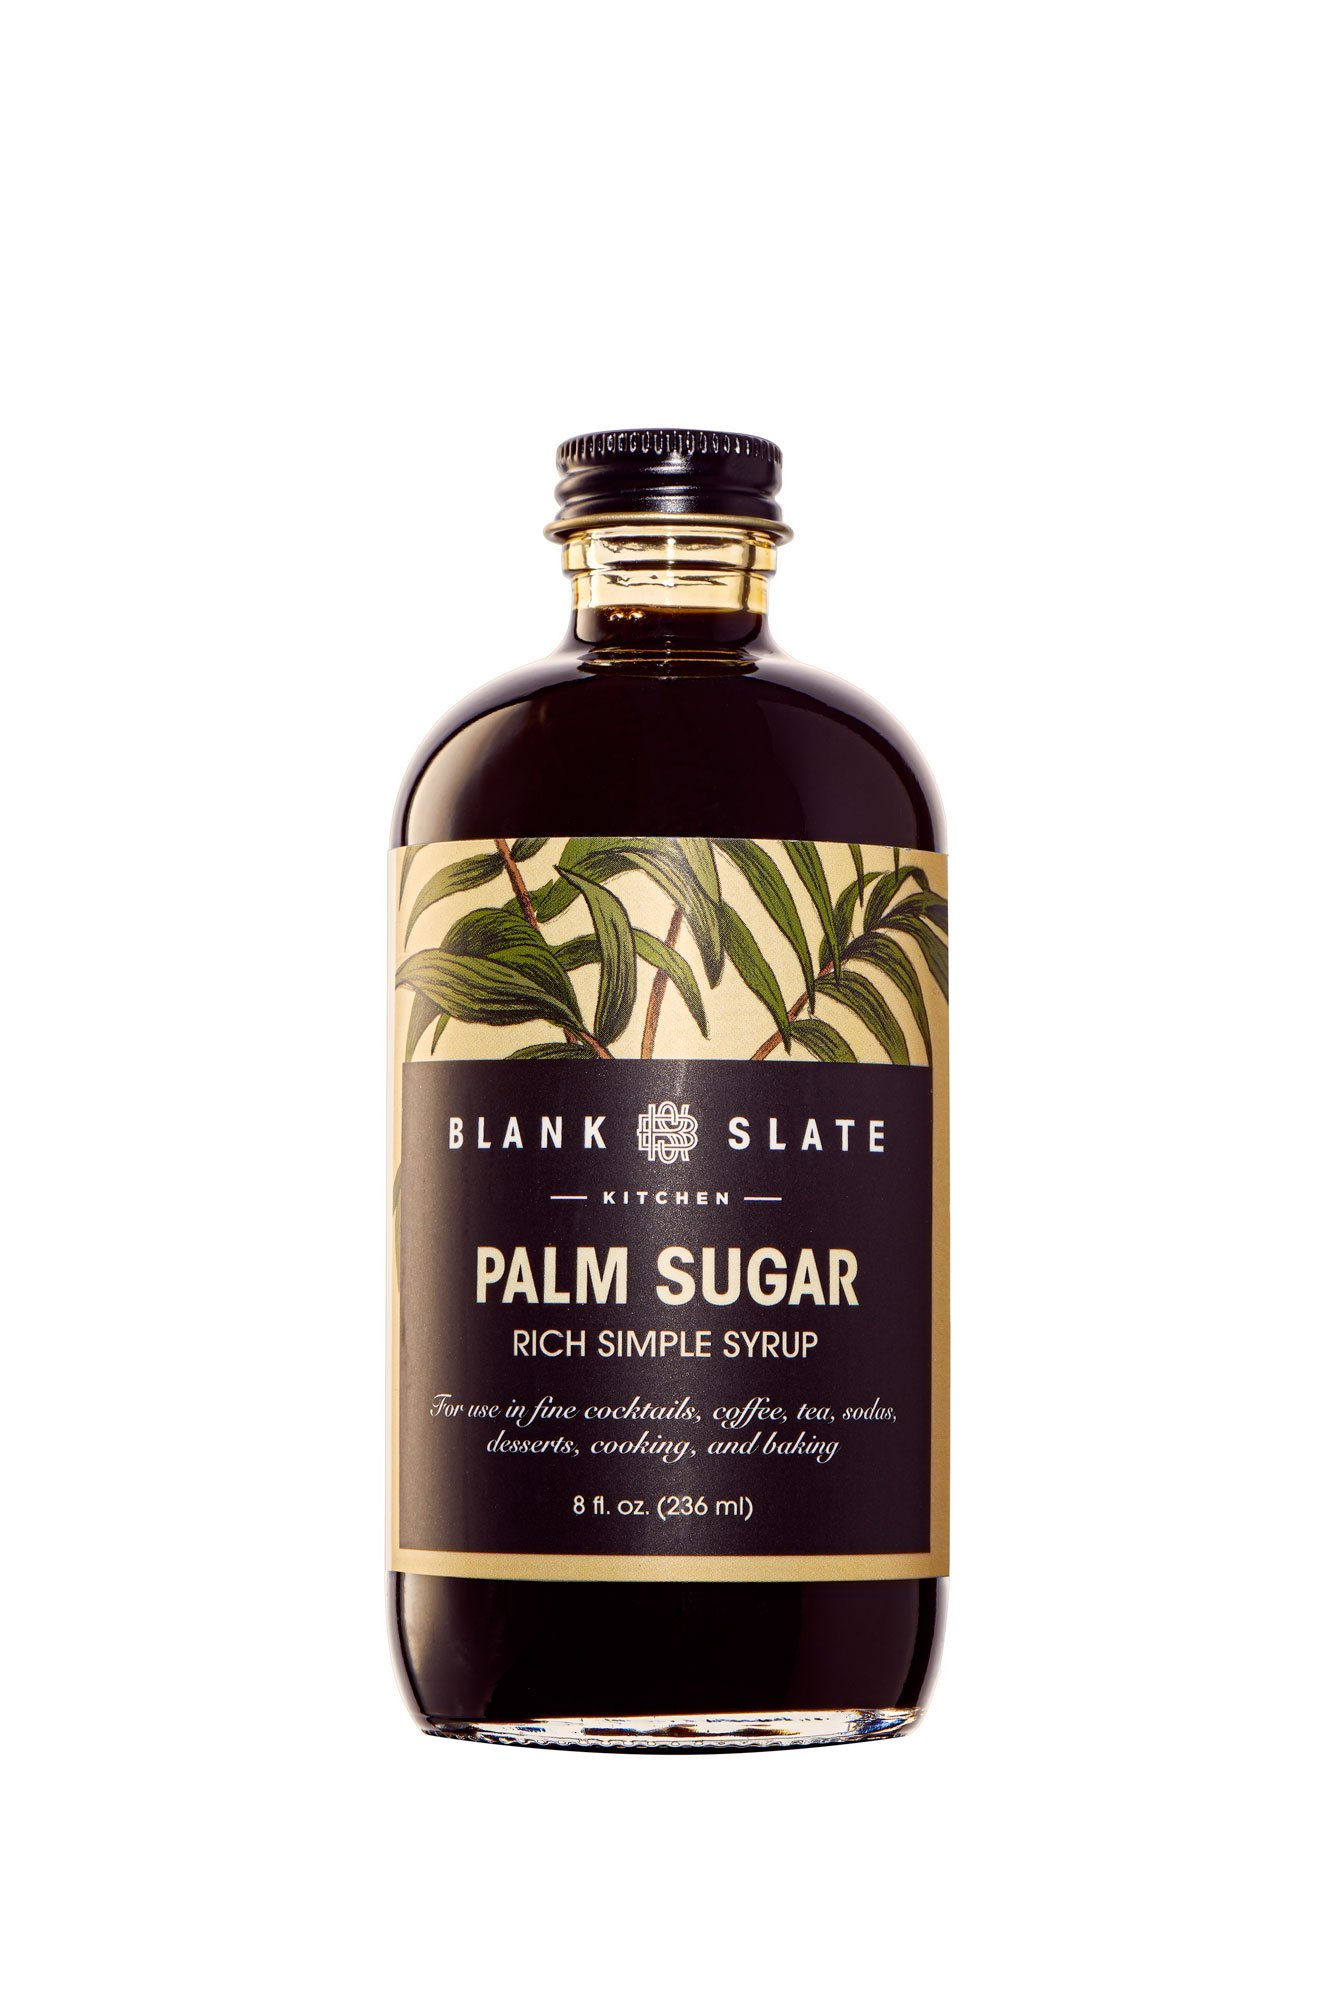 Palm Sugar Rich Simple Syrup | by Blank Slate Kitchen | 8 ounce | Cocktail Mixer or Dessert Topping (pack of 2) by Blank Slate Kitchen